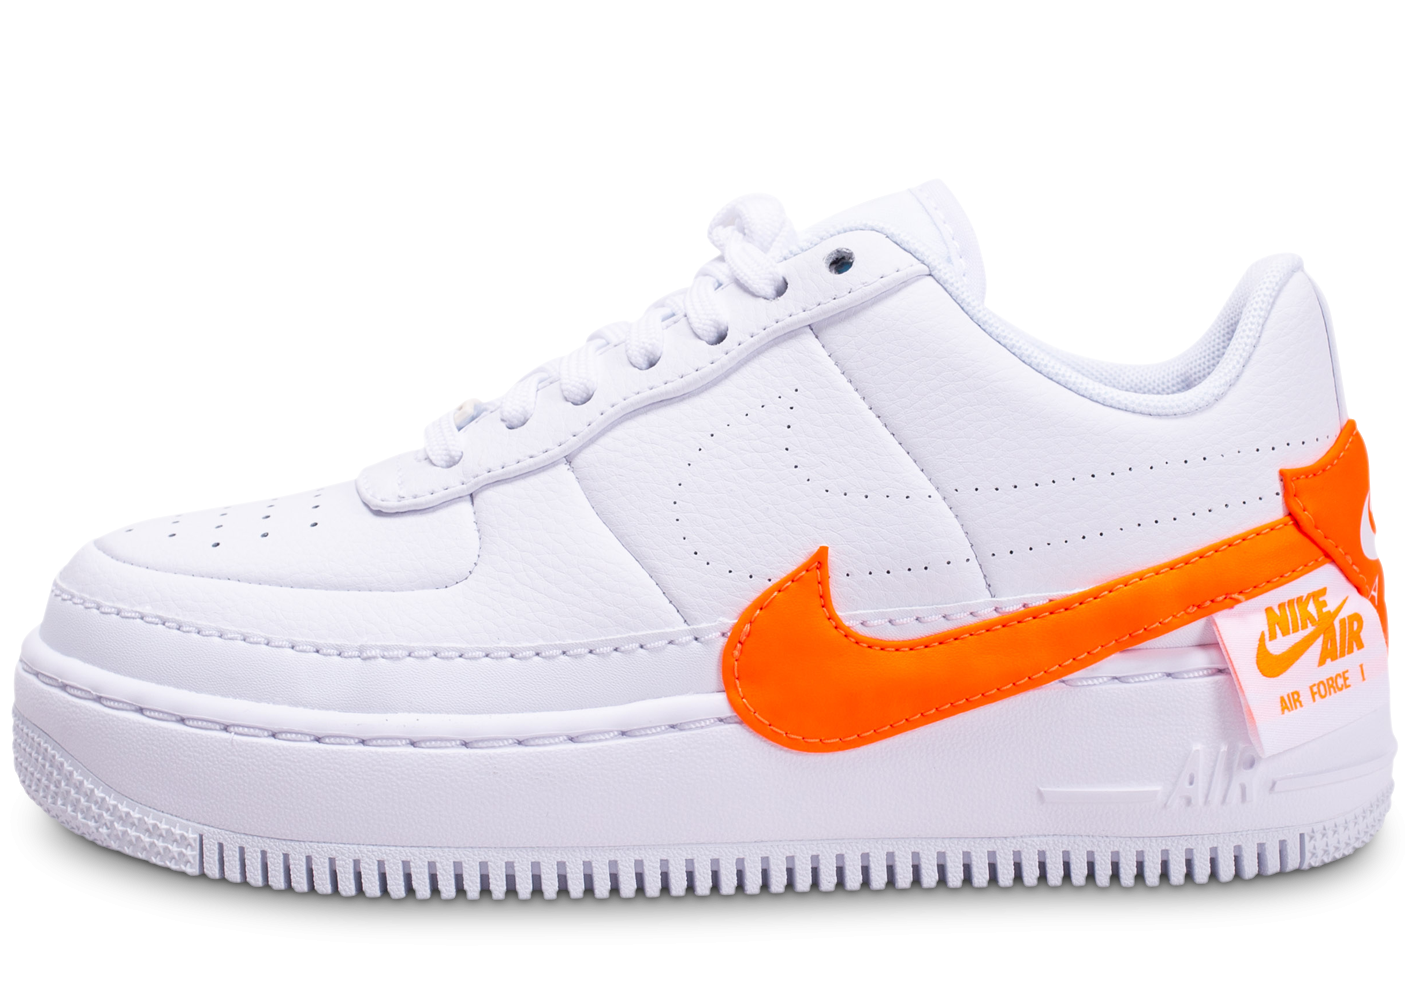 Nike Air Force 1 Jester XX Orange et Blanche femme